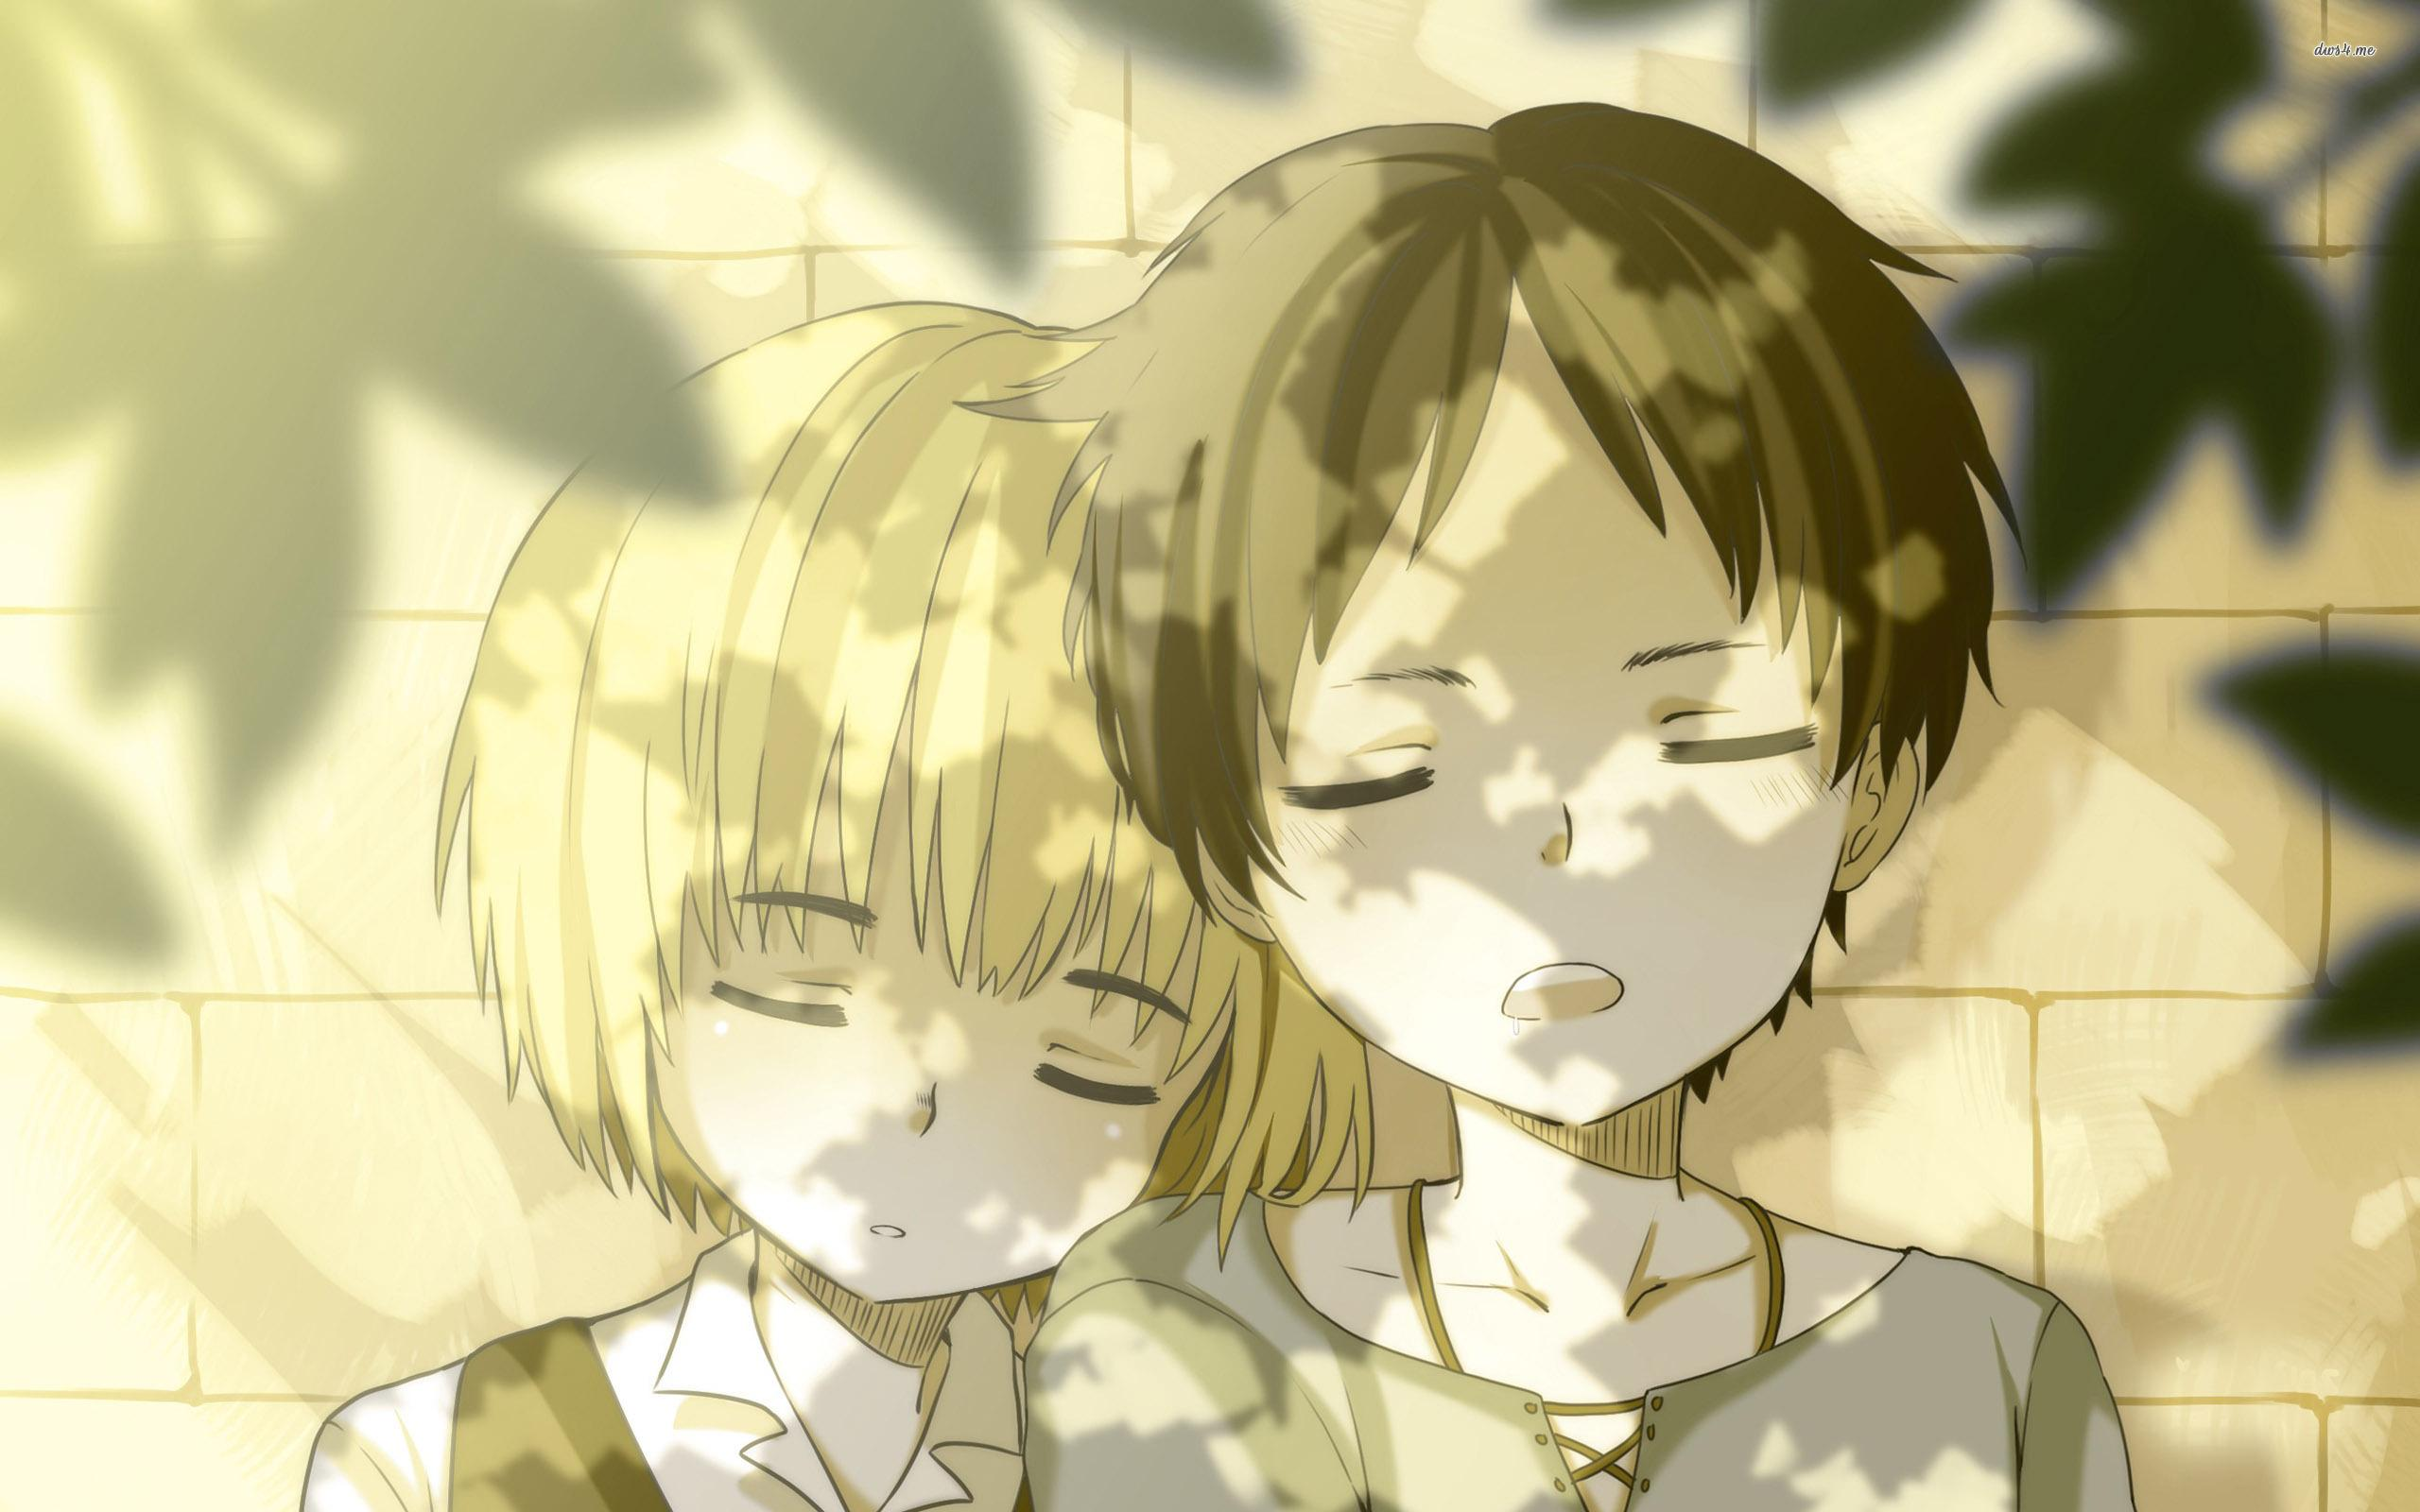 Armin Arlert and Eren Yeager